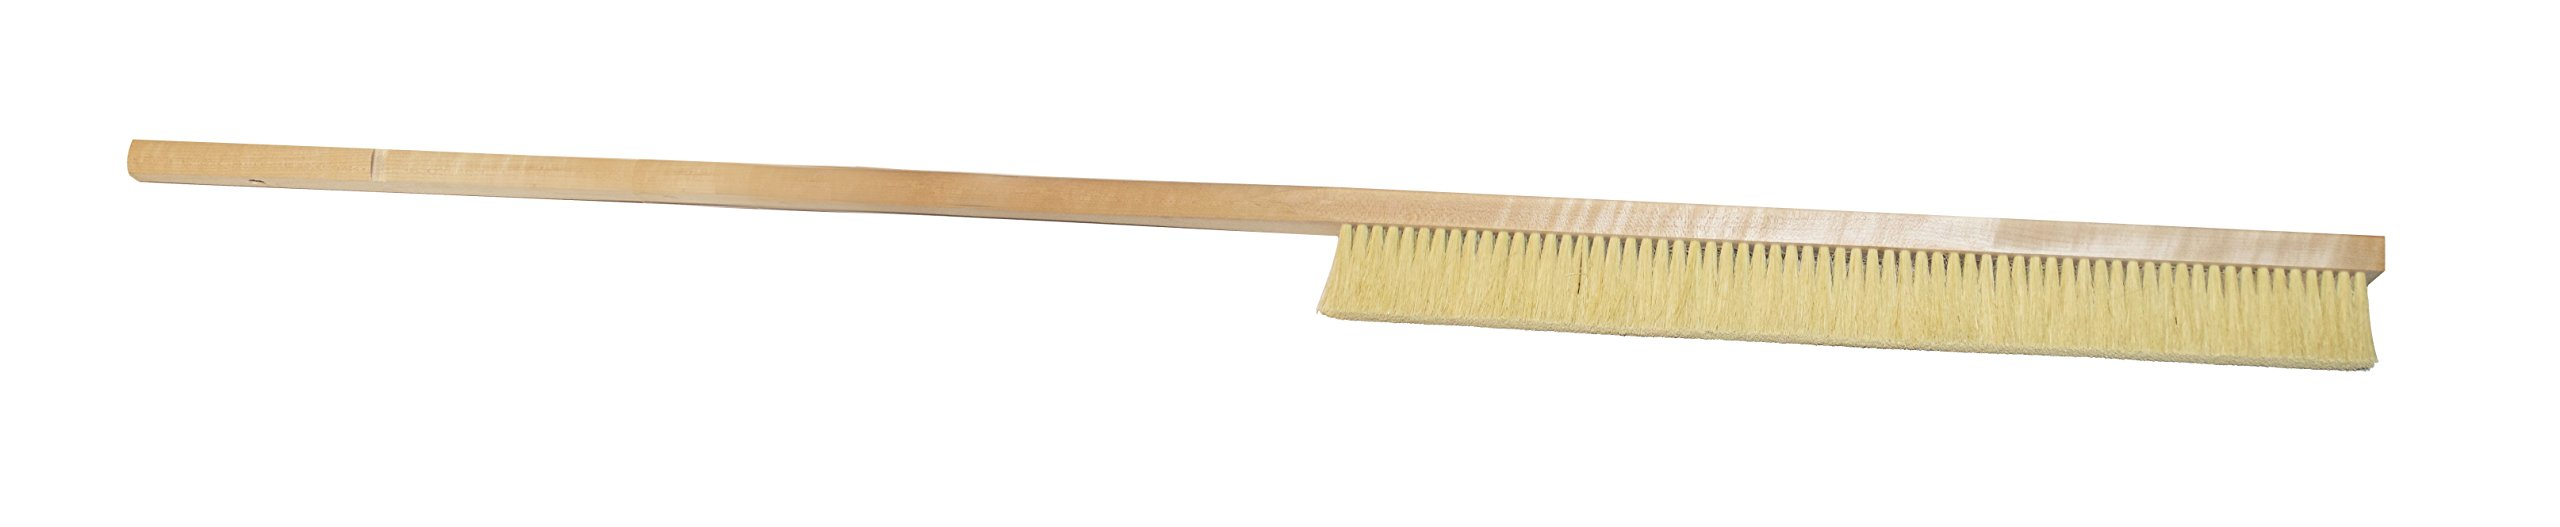 Chef Felton - CHEF805 - (Pack of 2) Pizza Oven Brush - 51'' Long Handled Tampico Fiber Brush - Made in Canada by Chef Felton